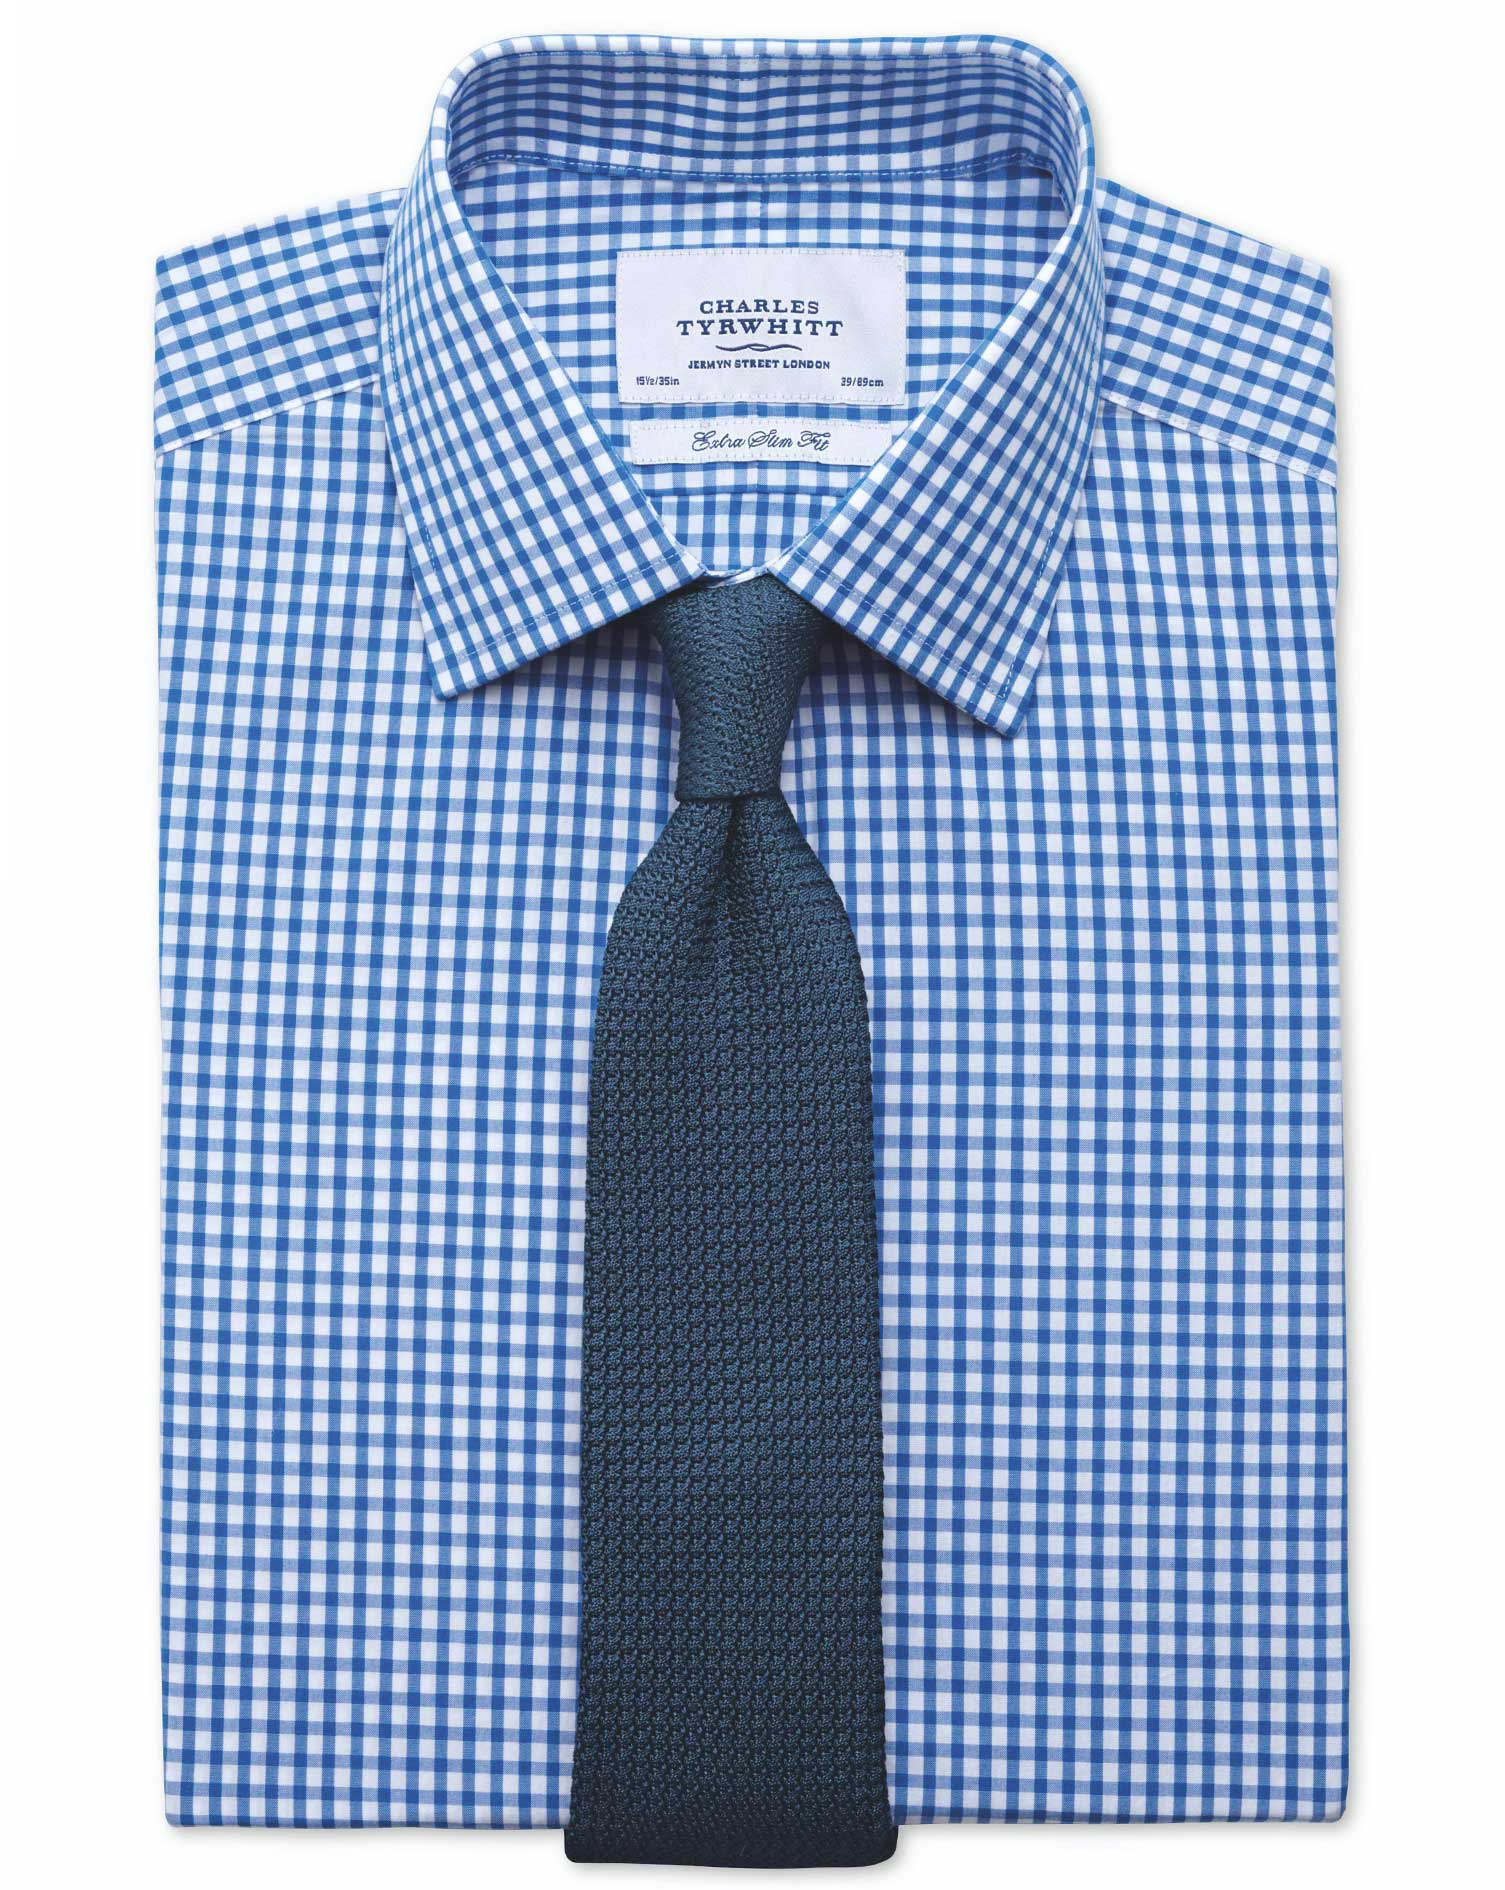 Extra Slim Fit Gingham Royal Blue Cotton Formal Shirt Double Cuff Size 15.5/35 by Charles Tyrwhitt